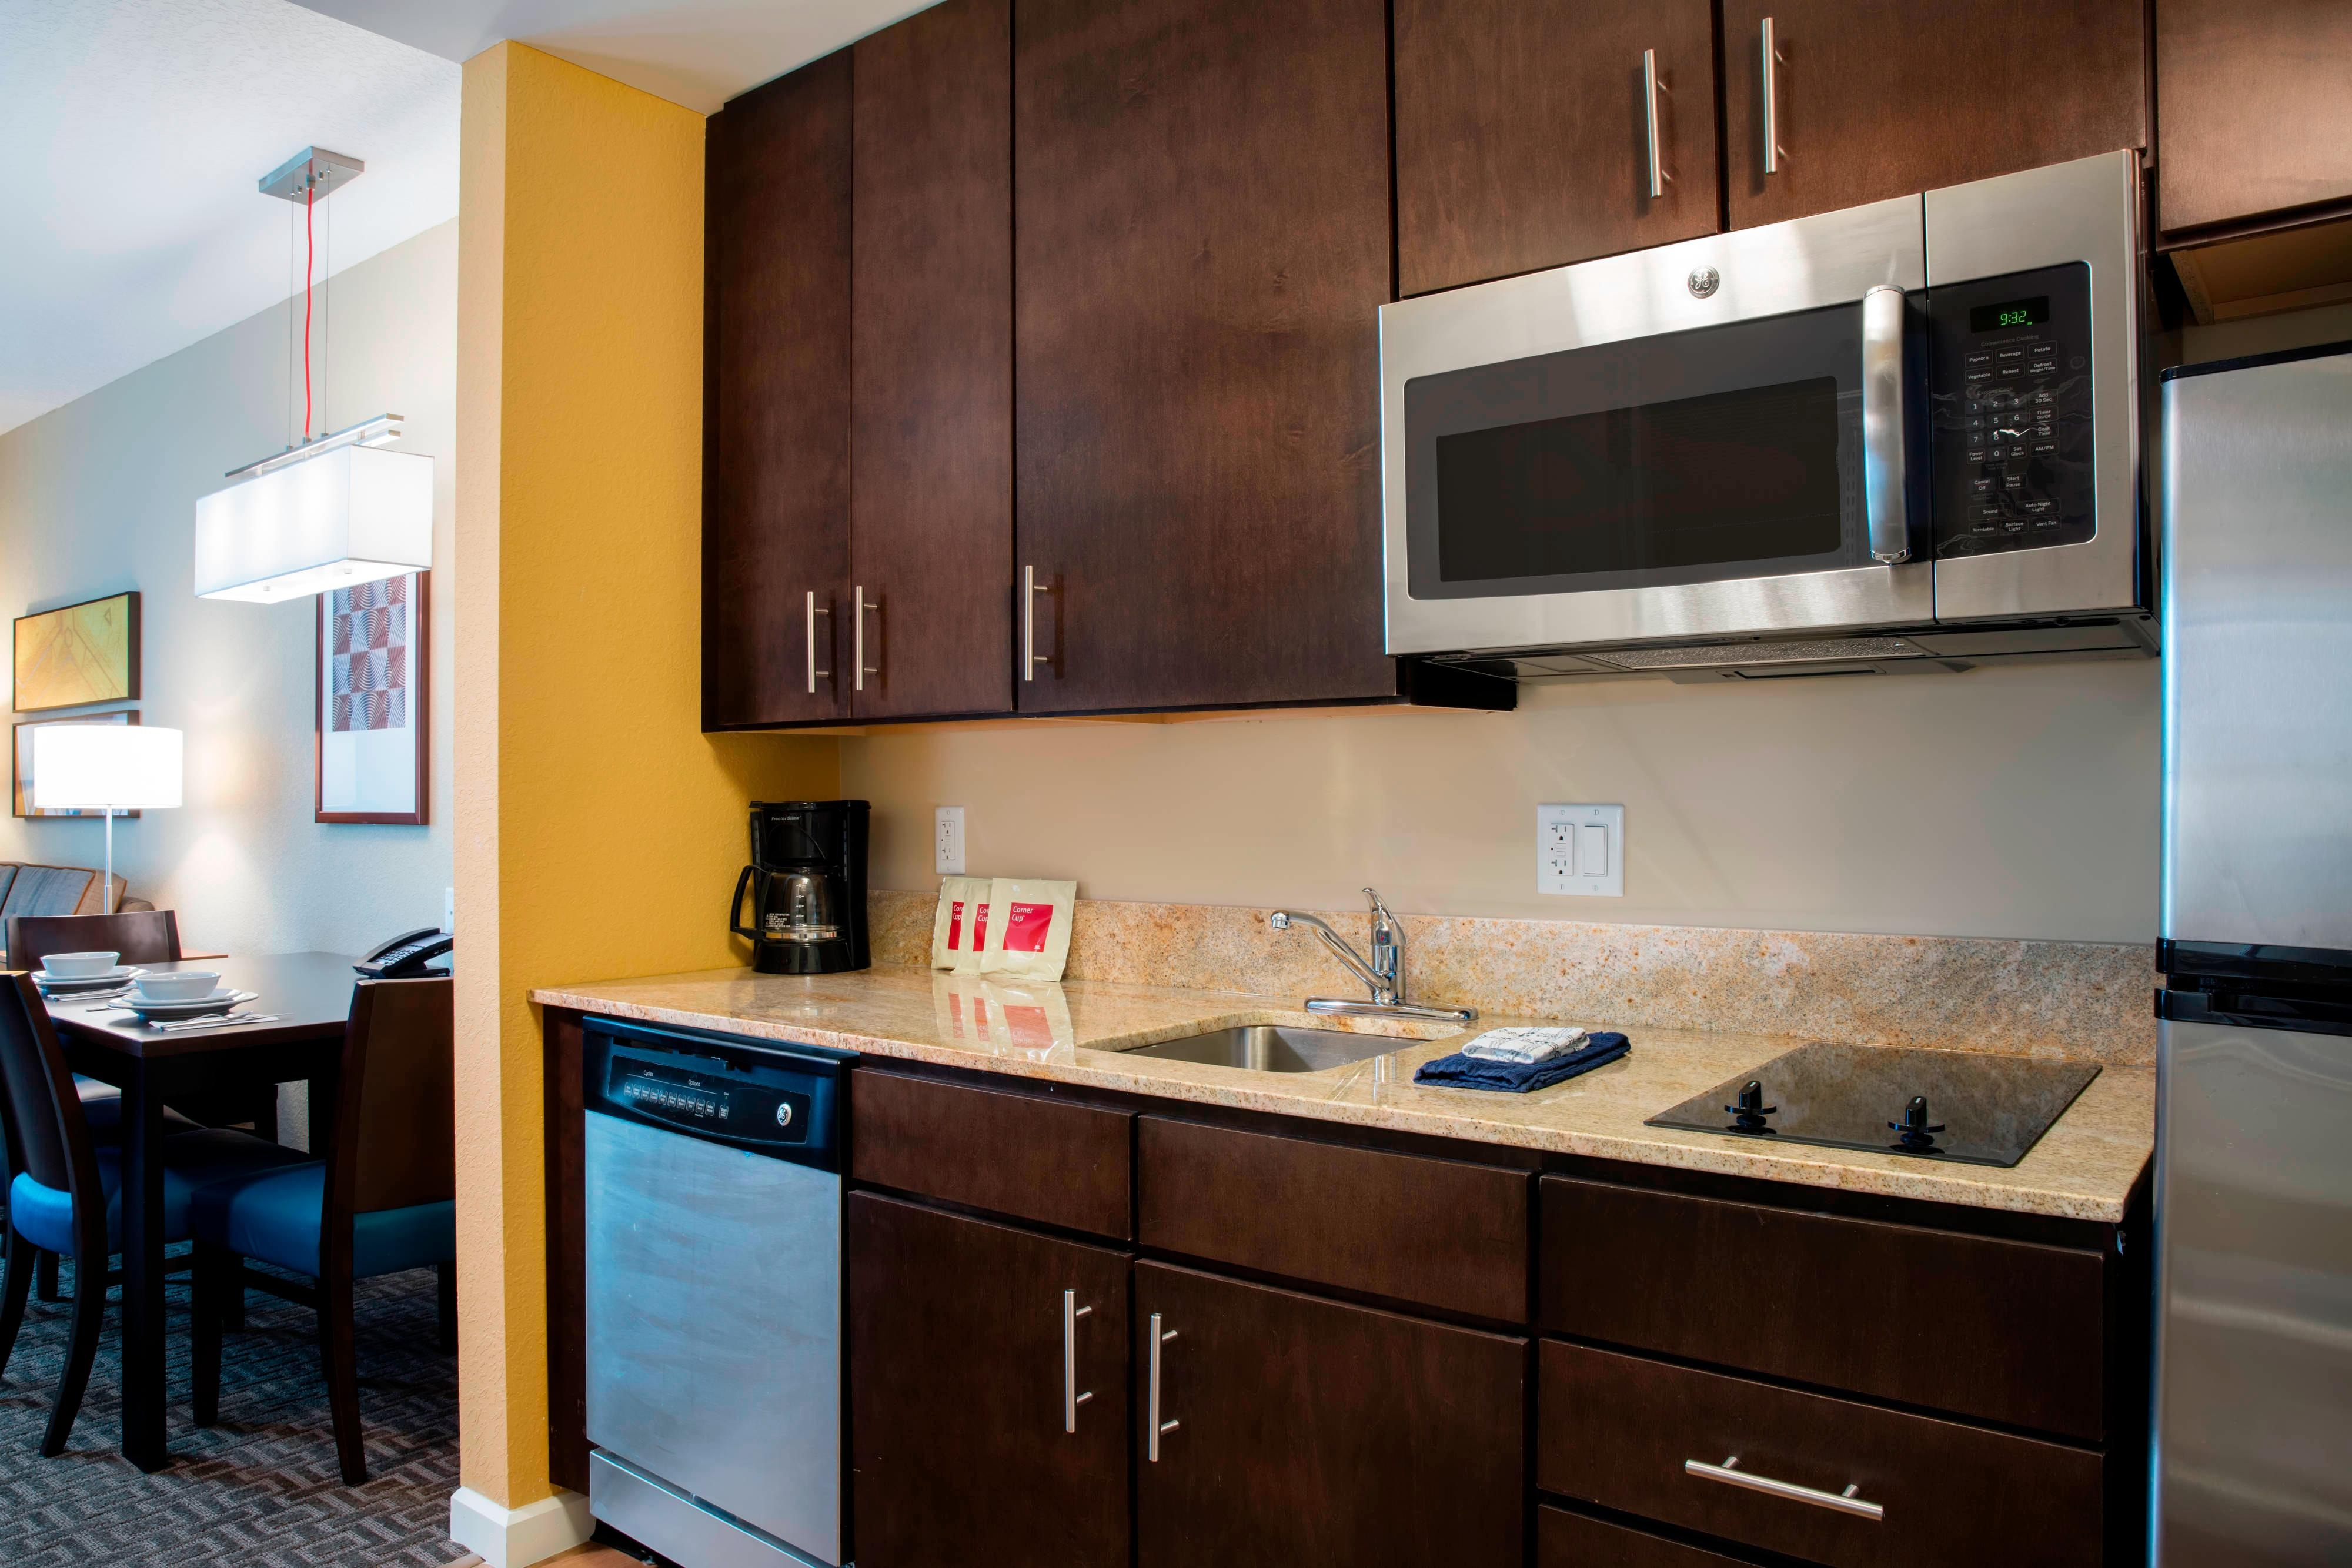 Magic Corner Kaufen Hotels Closest To Disney World Towneplace Suites Orlando At